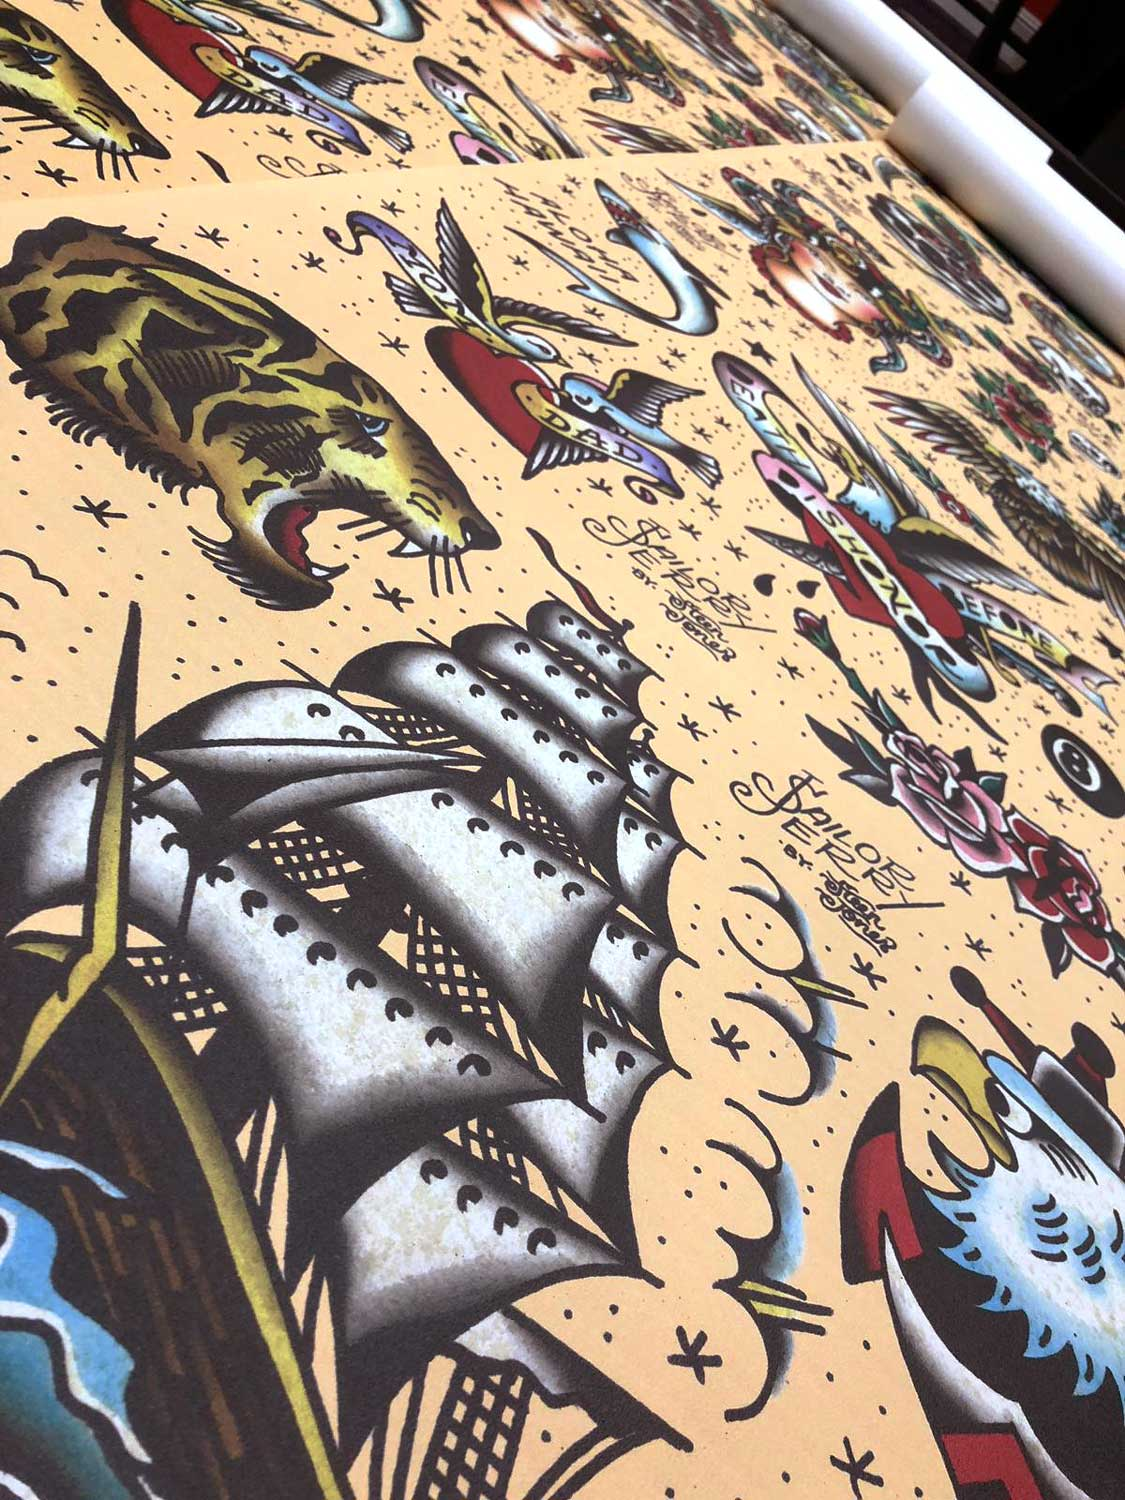 A particularly angled image of printed wallpaper featuring a Sailor Jerry style print